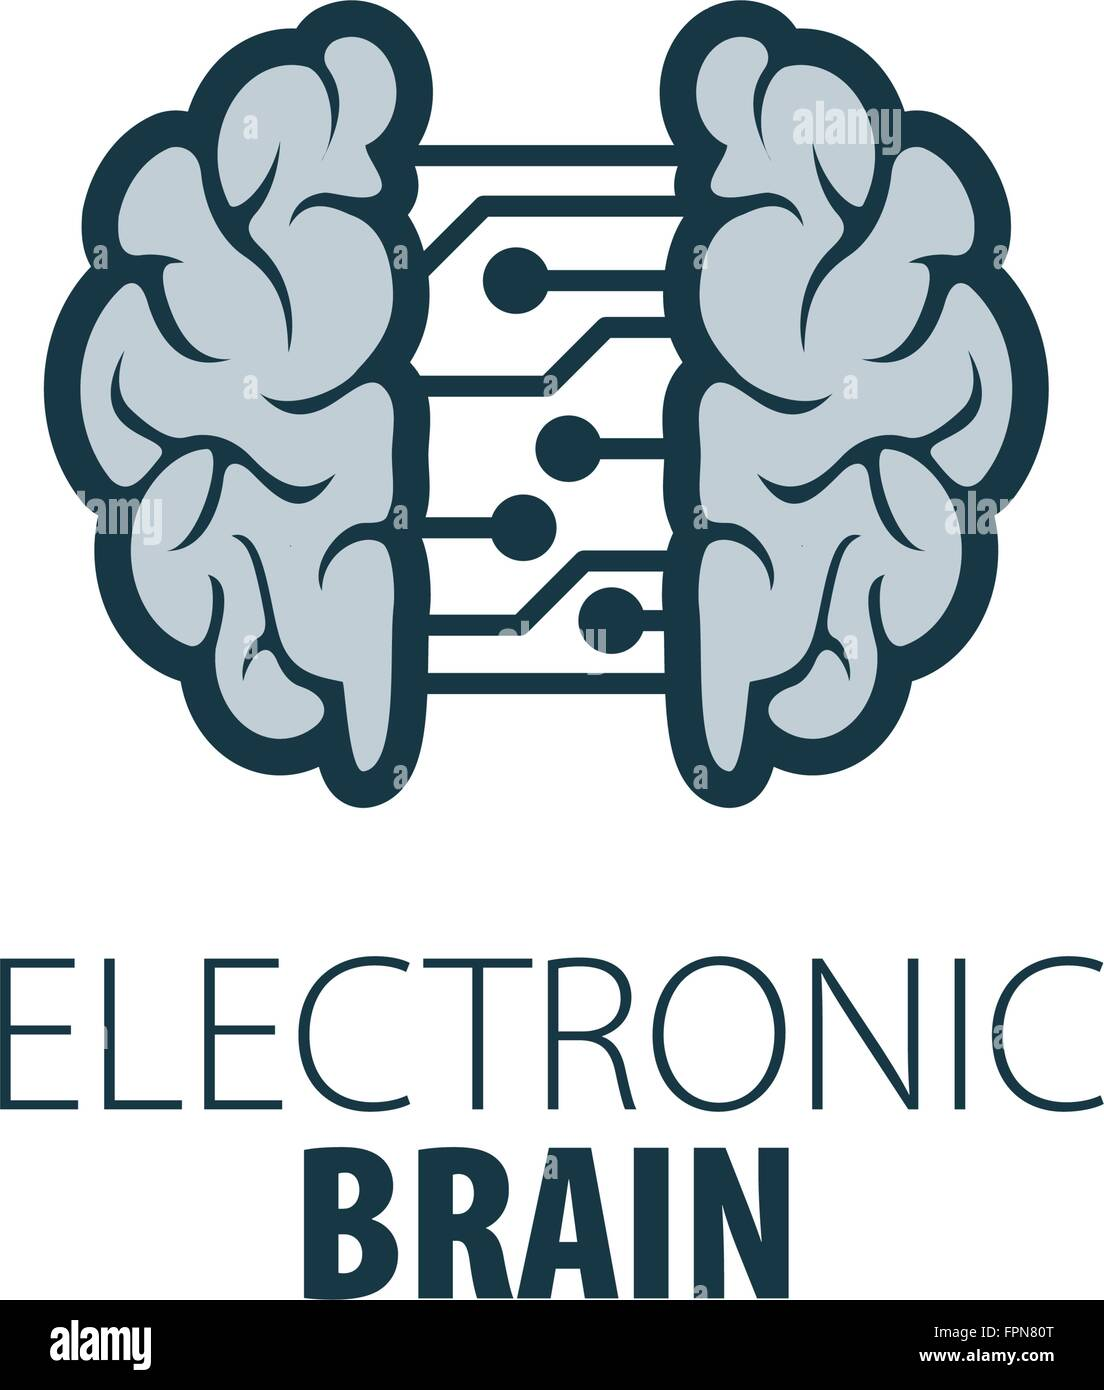 brain vector logo - photo #9